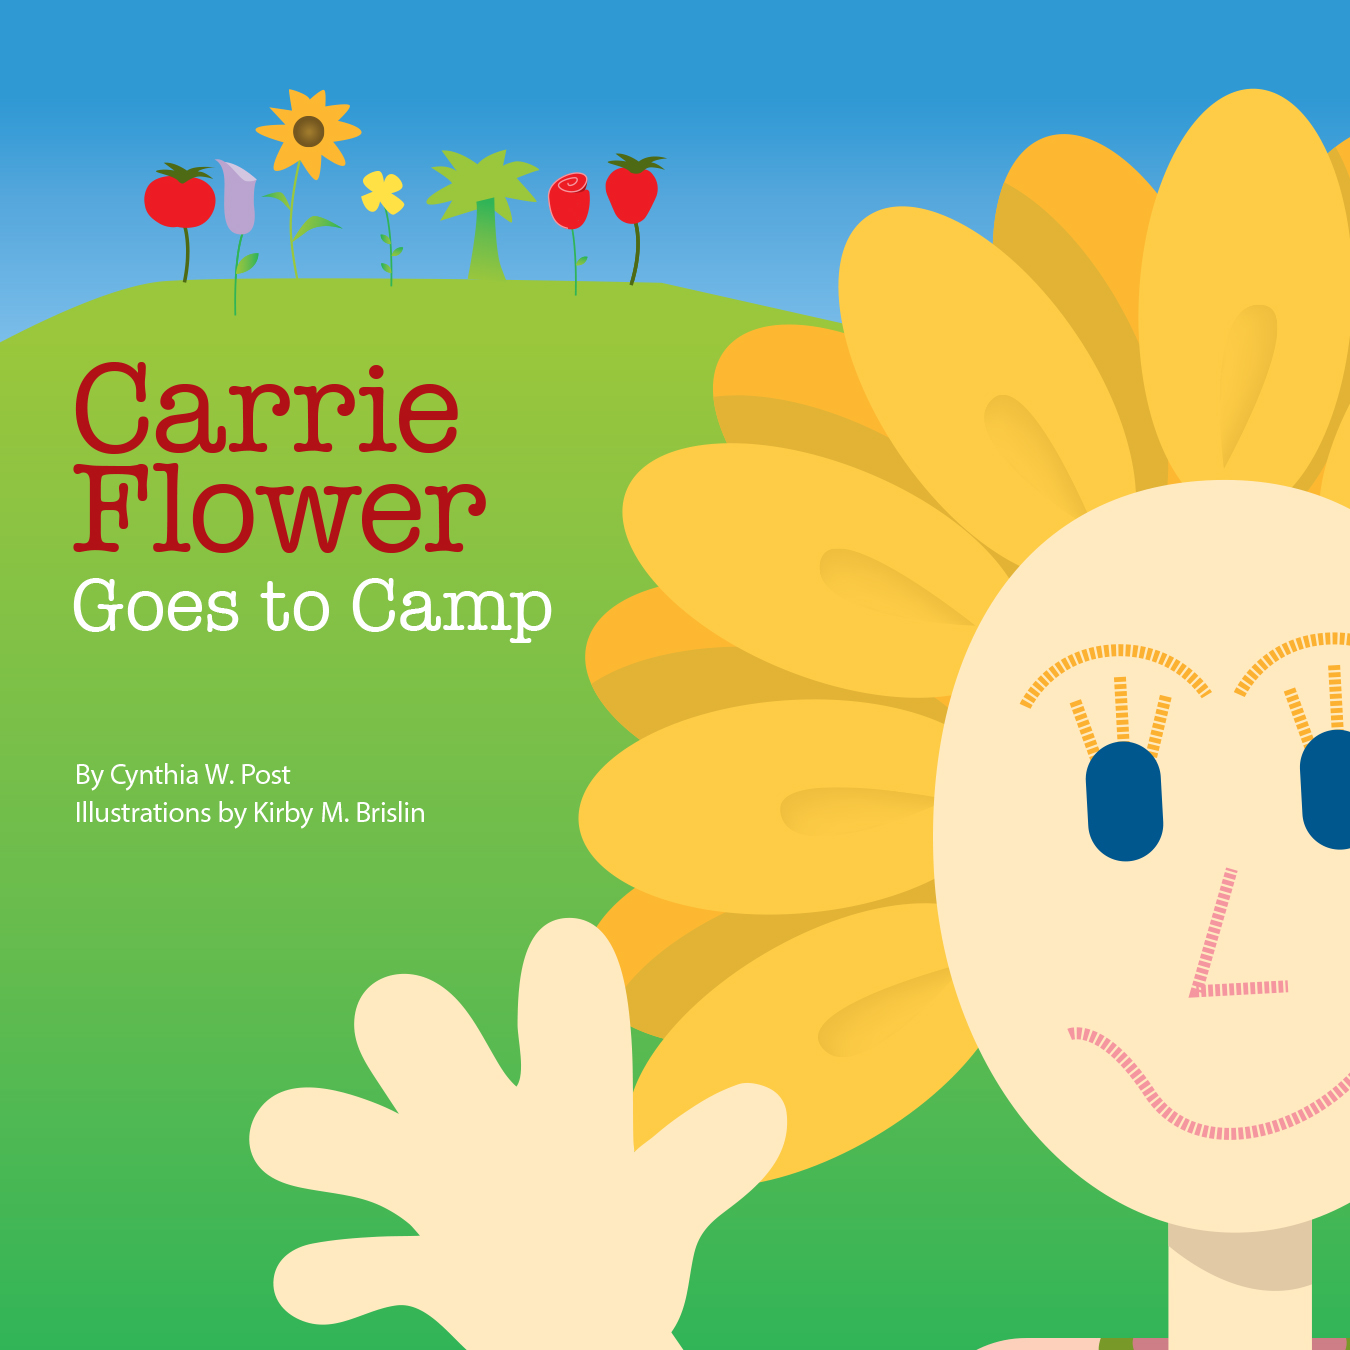 Carrie Flower Goes To Camp Web Sample-1.jpg